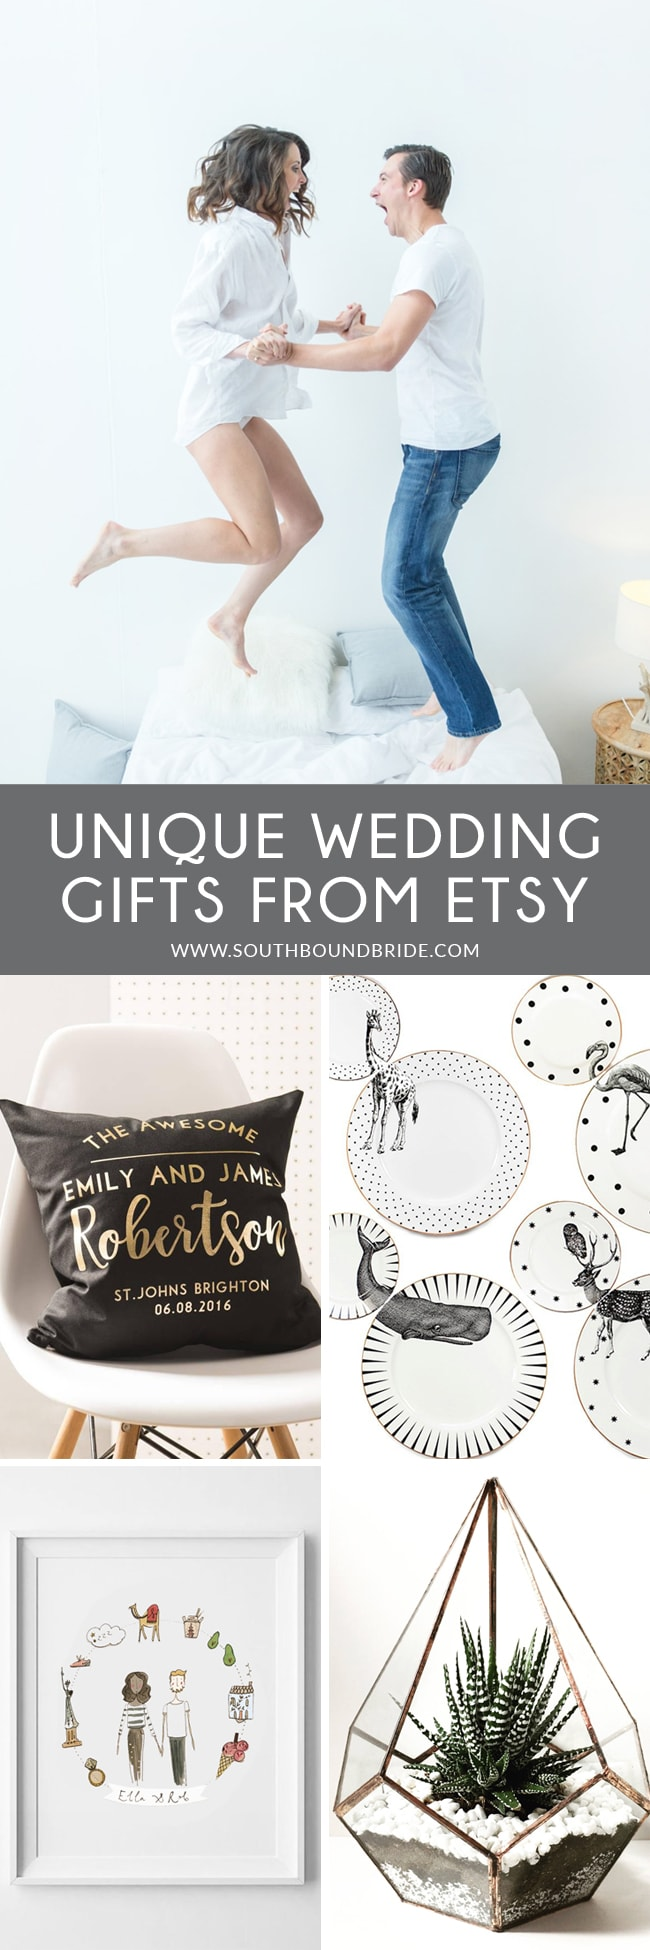 20 Unique Handmade Wedding Gifts from Etsy | SouthBound Bride